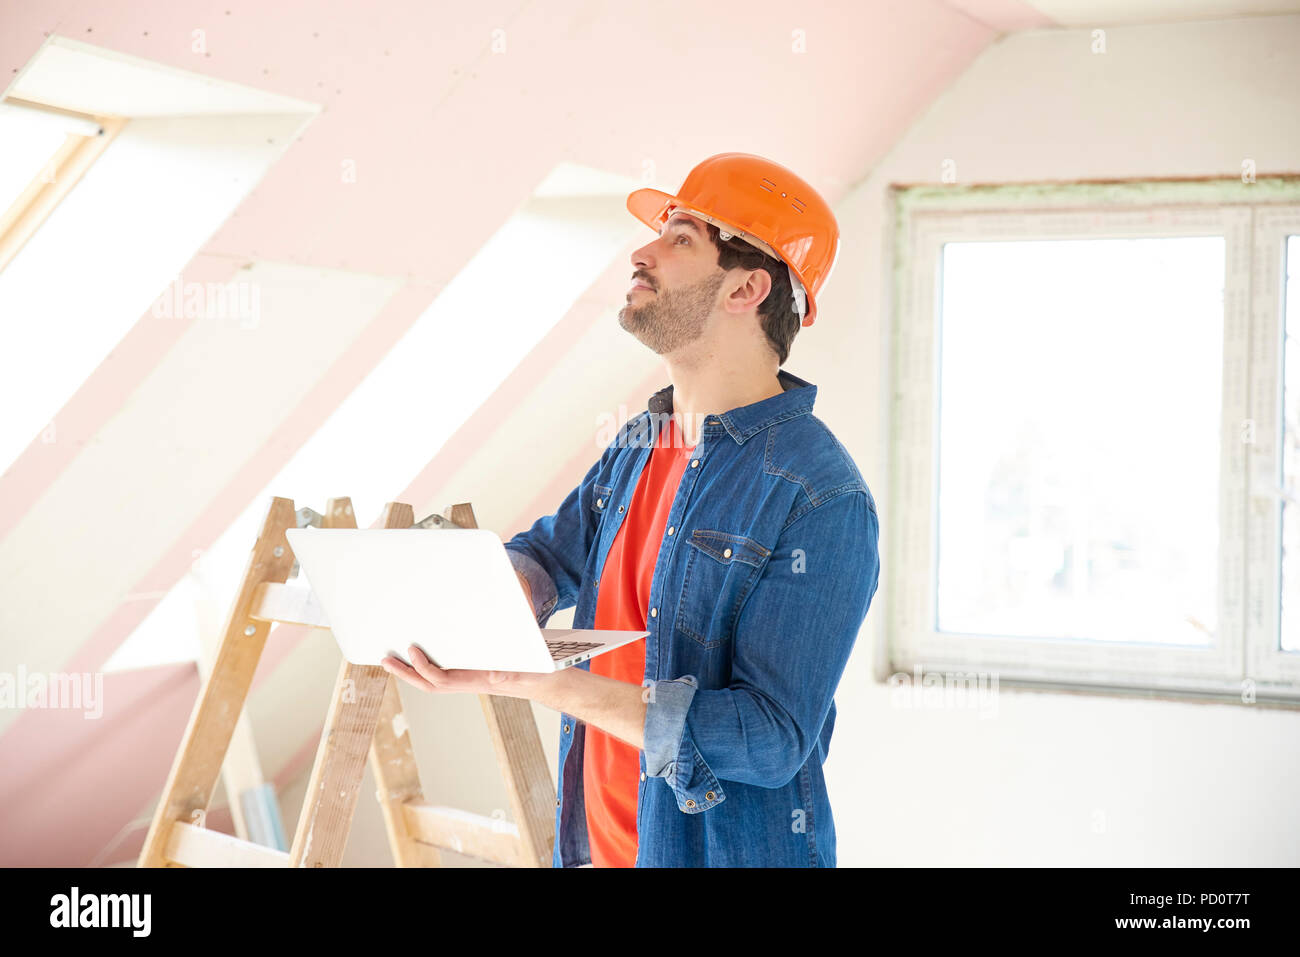 Shot of young engineer holding laptop in his hand while standing at construction site and working. - Stock Image